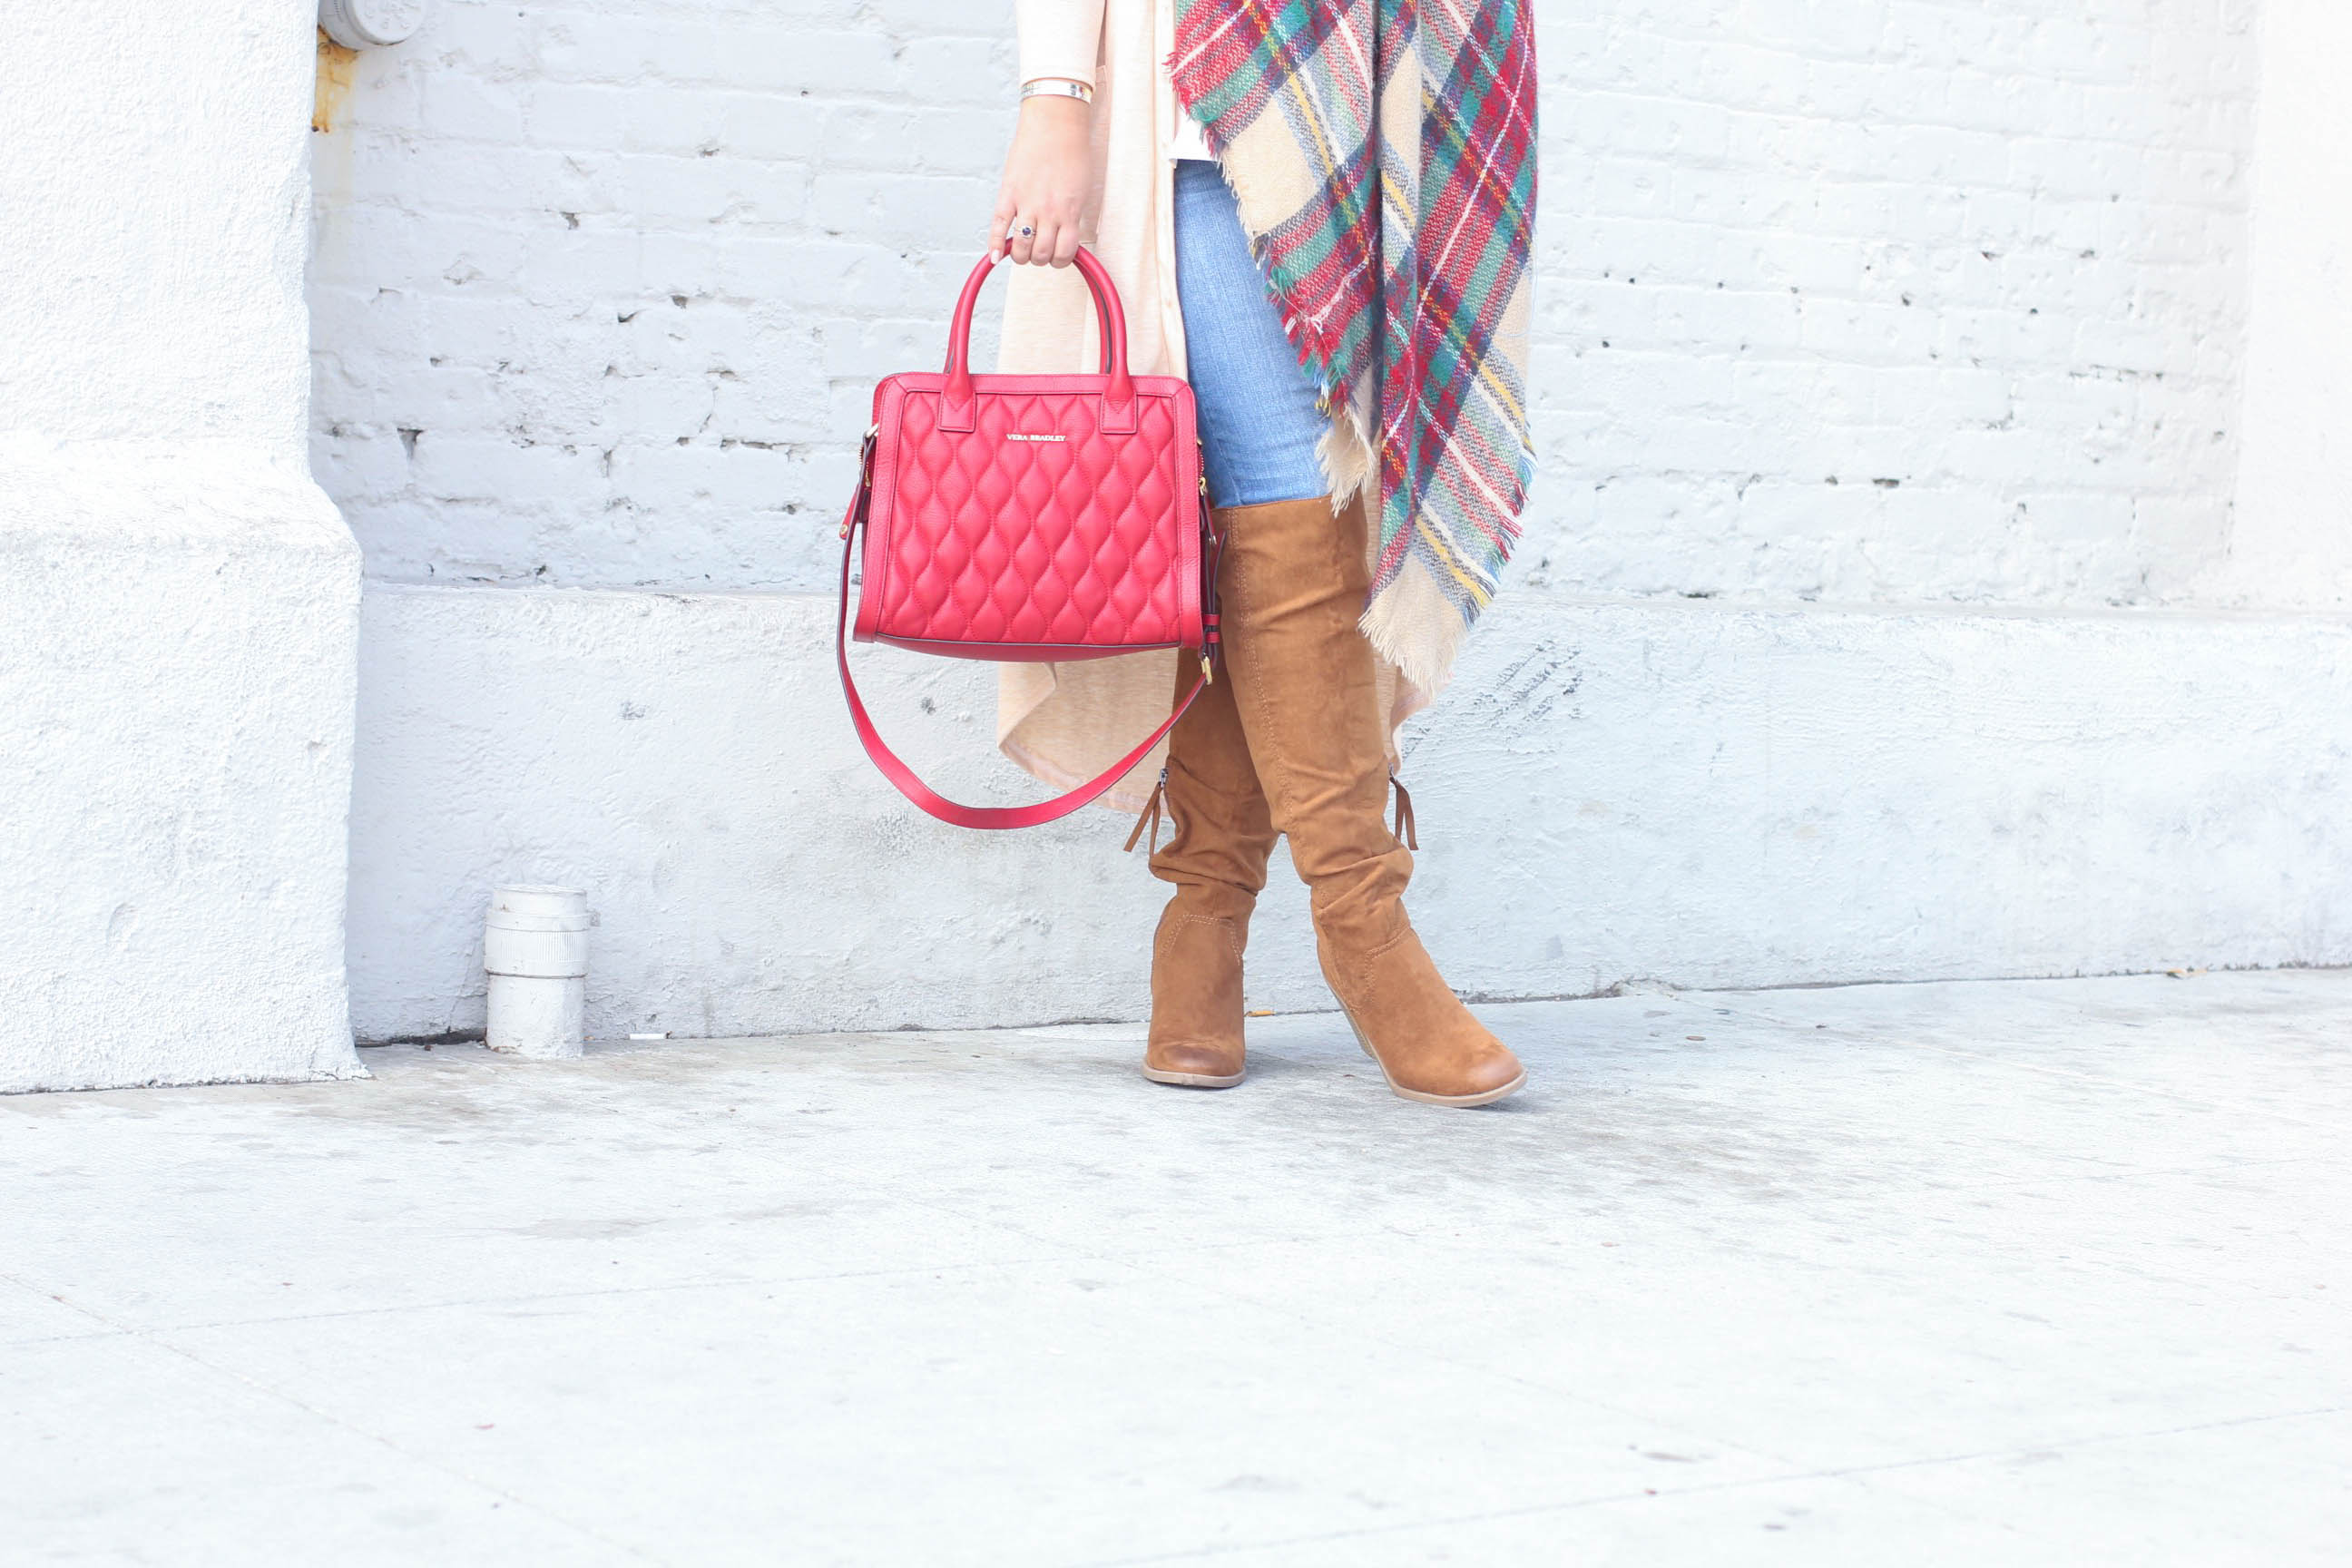 blanket scarf, how to wear a blanket scarf, la winter style, jeggings, mirrored sunglasses, silver sunglasses, red leather satchel, missyonmadison, missyonmadison instagram, fashion blogger, melissa tierney, winter style, la blogger, vera bradley, otk boots, target boots, target jeggings, target skinny jeans, white chiffon camisole, beige duster cardigan, beige cardigan,